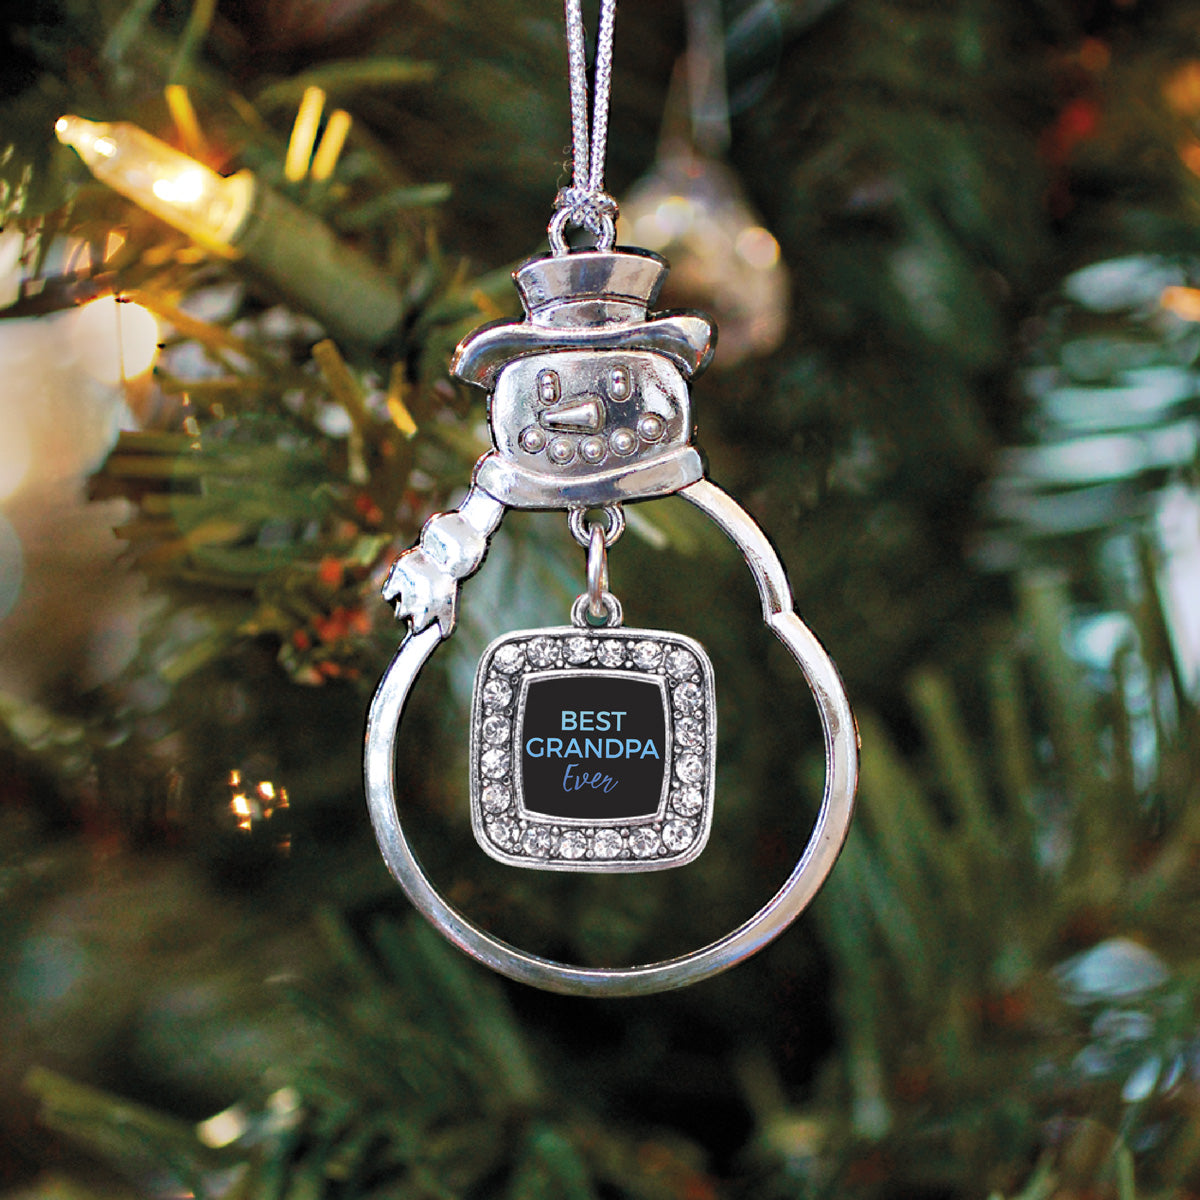 Best Grandpa Ever Square Charm Christmas / Holiday Ornament